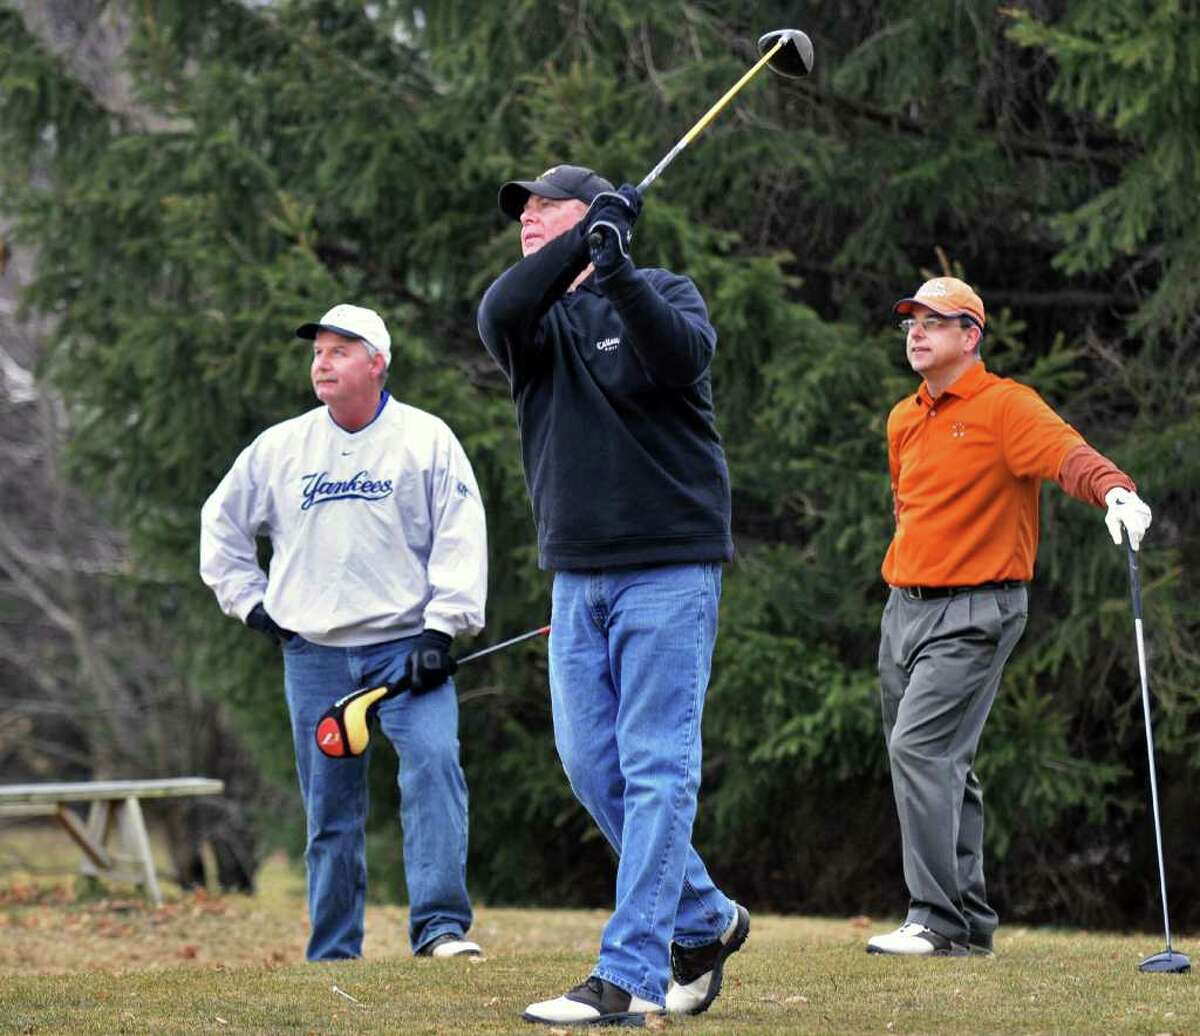 Early season golfers, from left, Tim Mardon, Mark Bowman and Tim Mosher, all of Poestenkill, at Evergreen Country Club in Schodack Wednesday Feb. 15, 2012. (John Carl D'Annibale / Times Union)